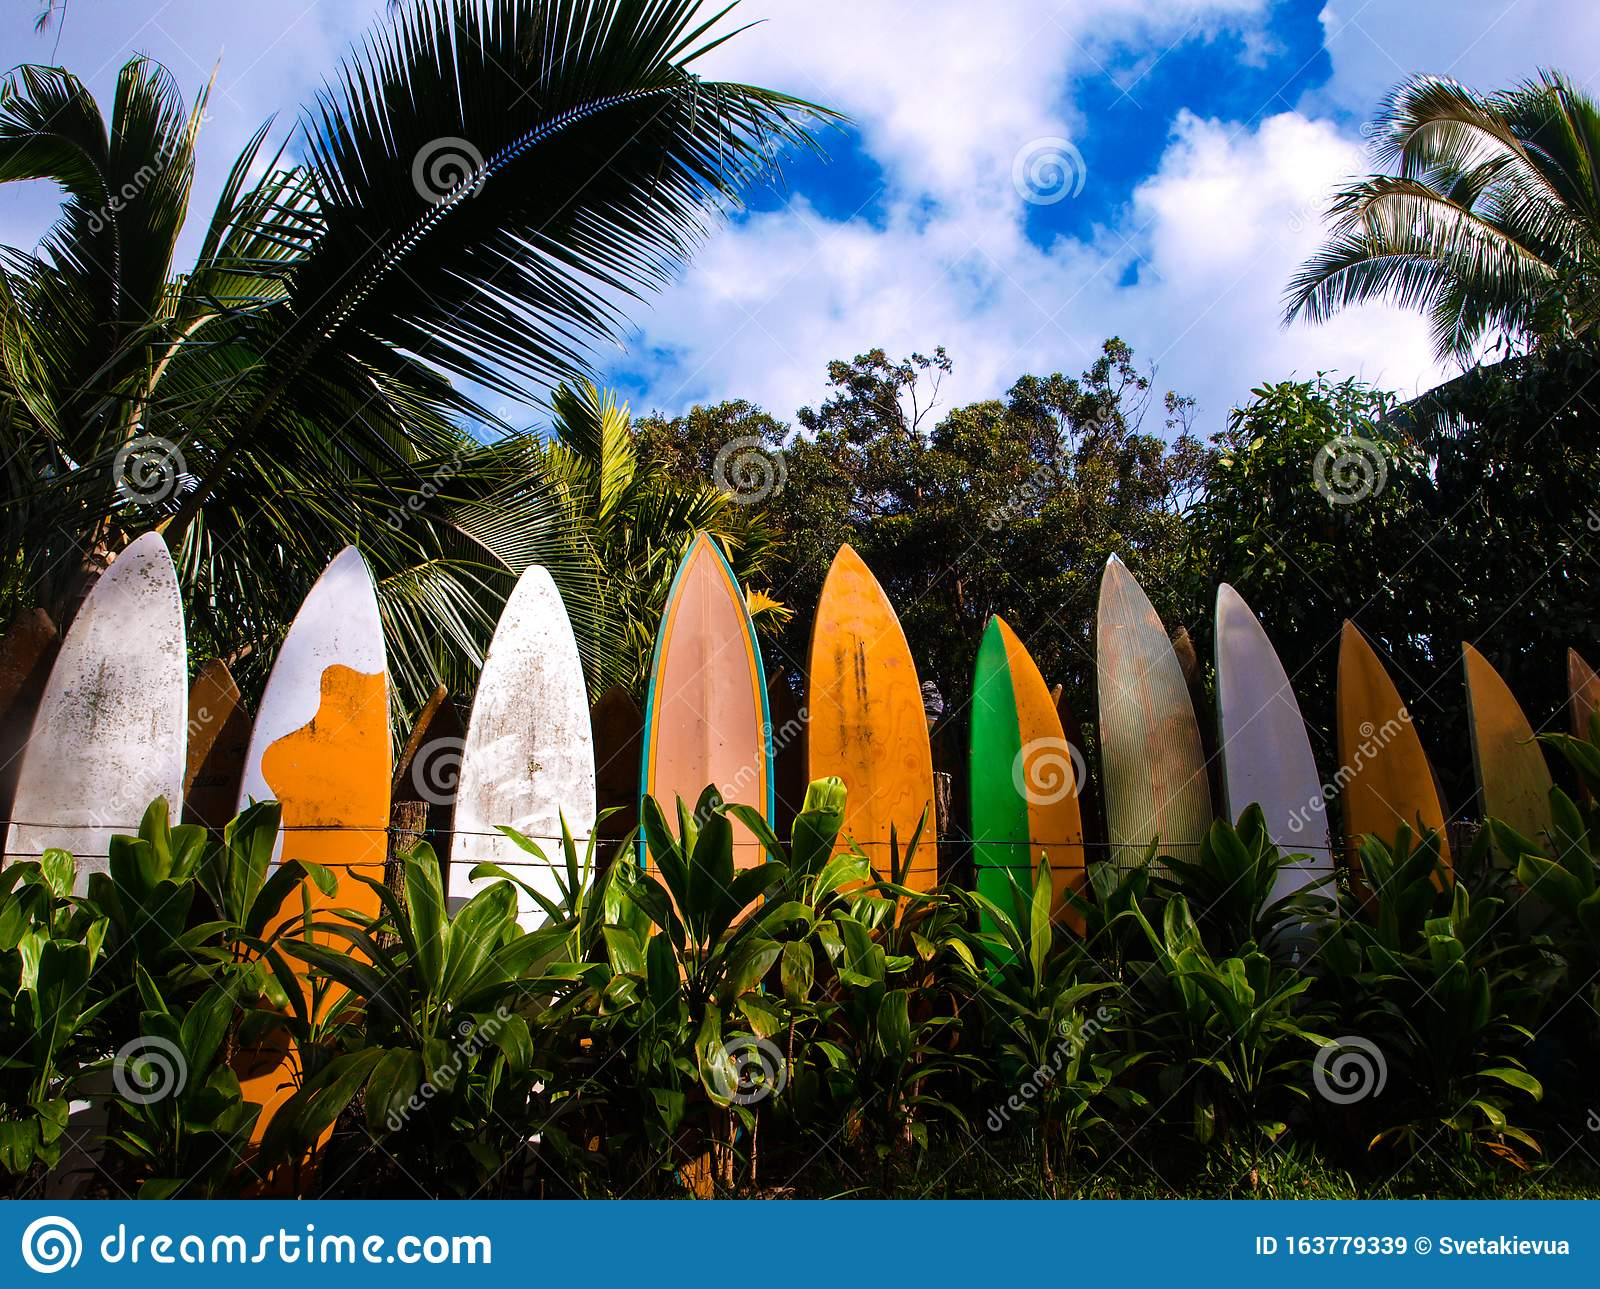 Row Of Colorful Surfboards Staked As A Fence In Hawaii ...